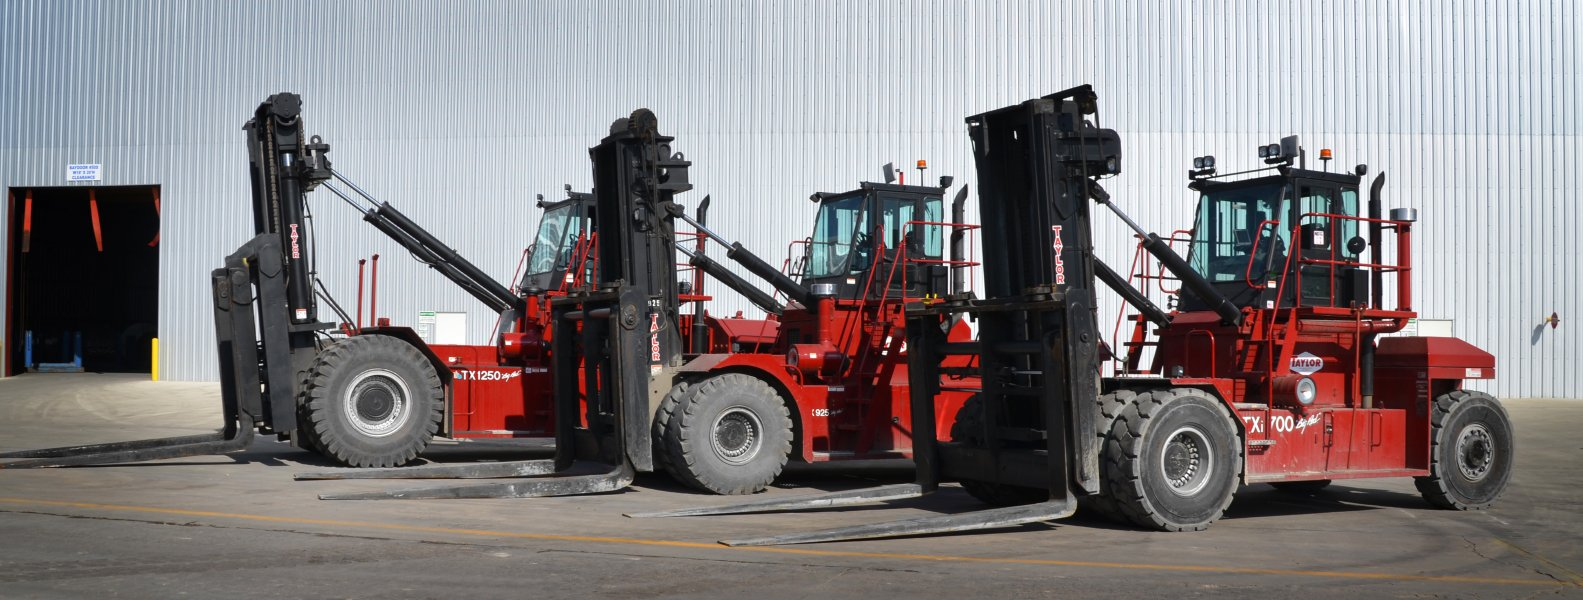 BLT WORLD Forklifts & Container Handlers